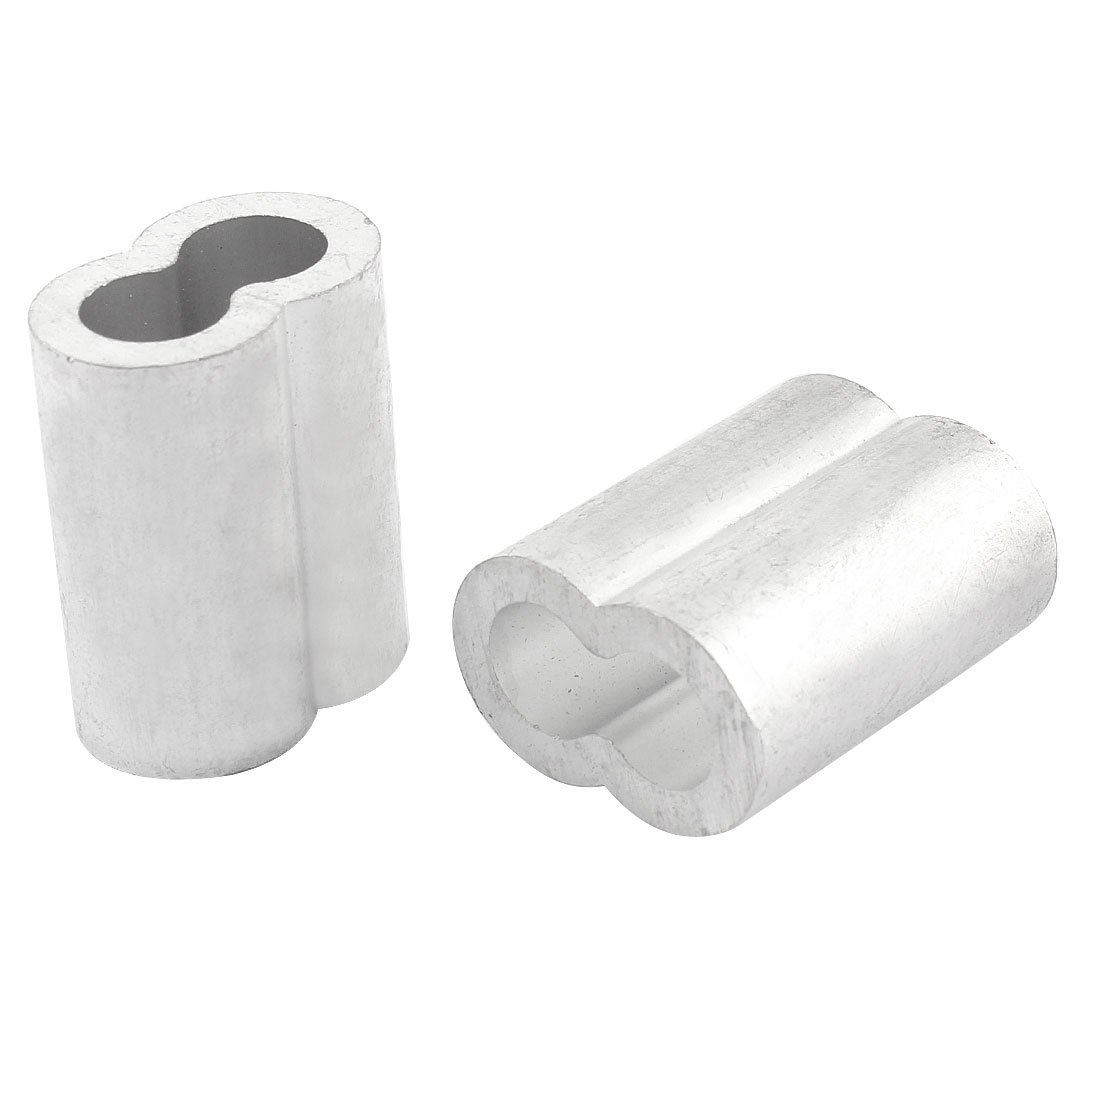 Aluminum Sleeve for 3/8 Inch Steel Wire Rope Swage Clip 2pcs ...